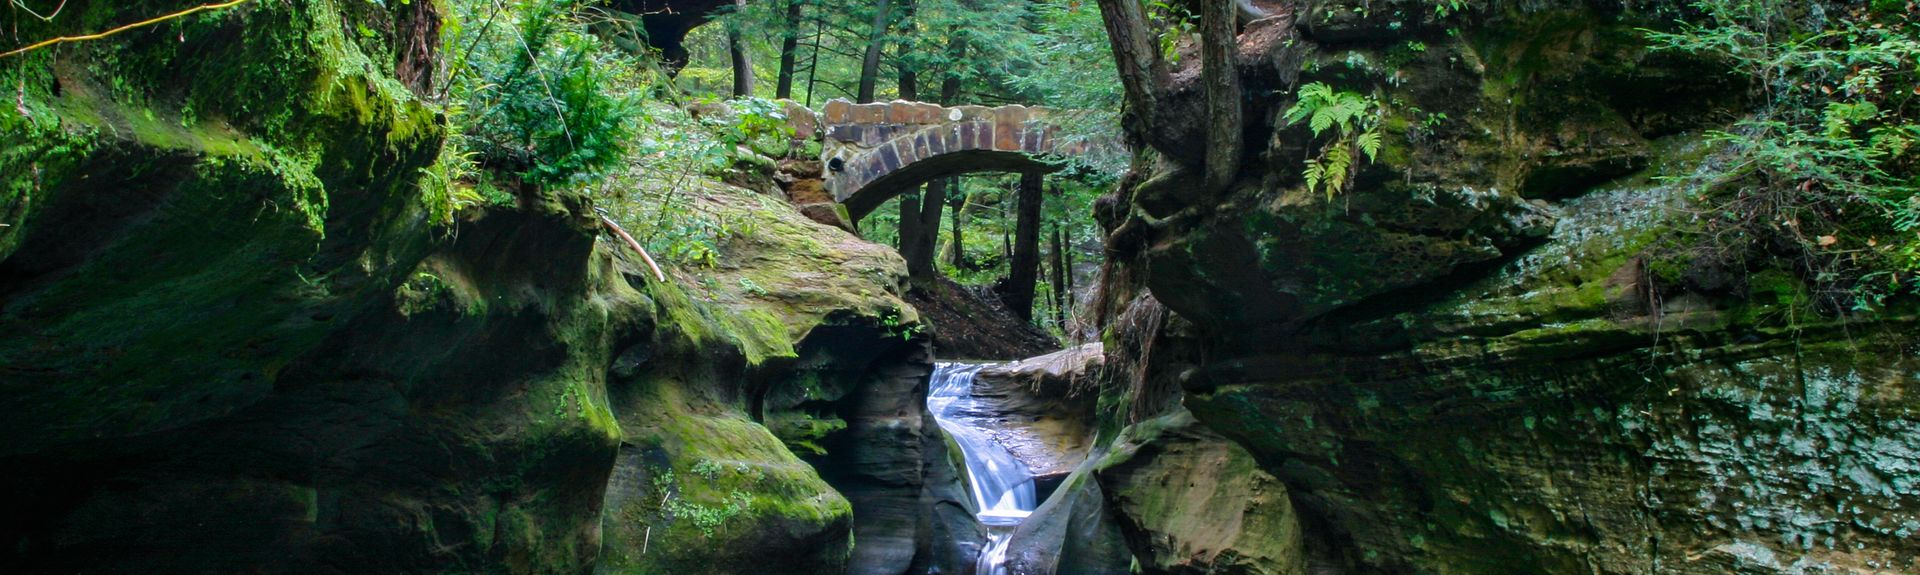 The Hocking Hills, Ohio, United States of America